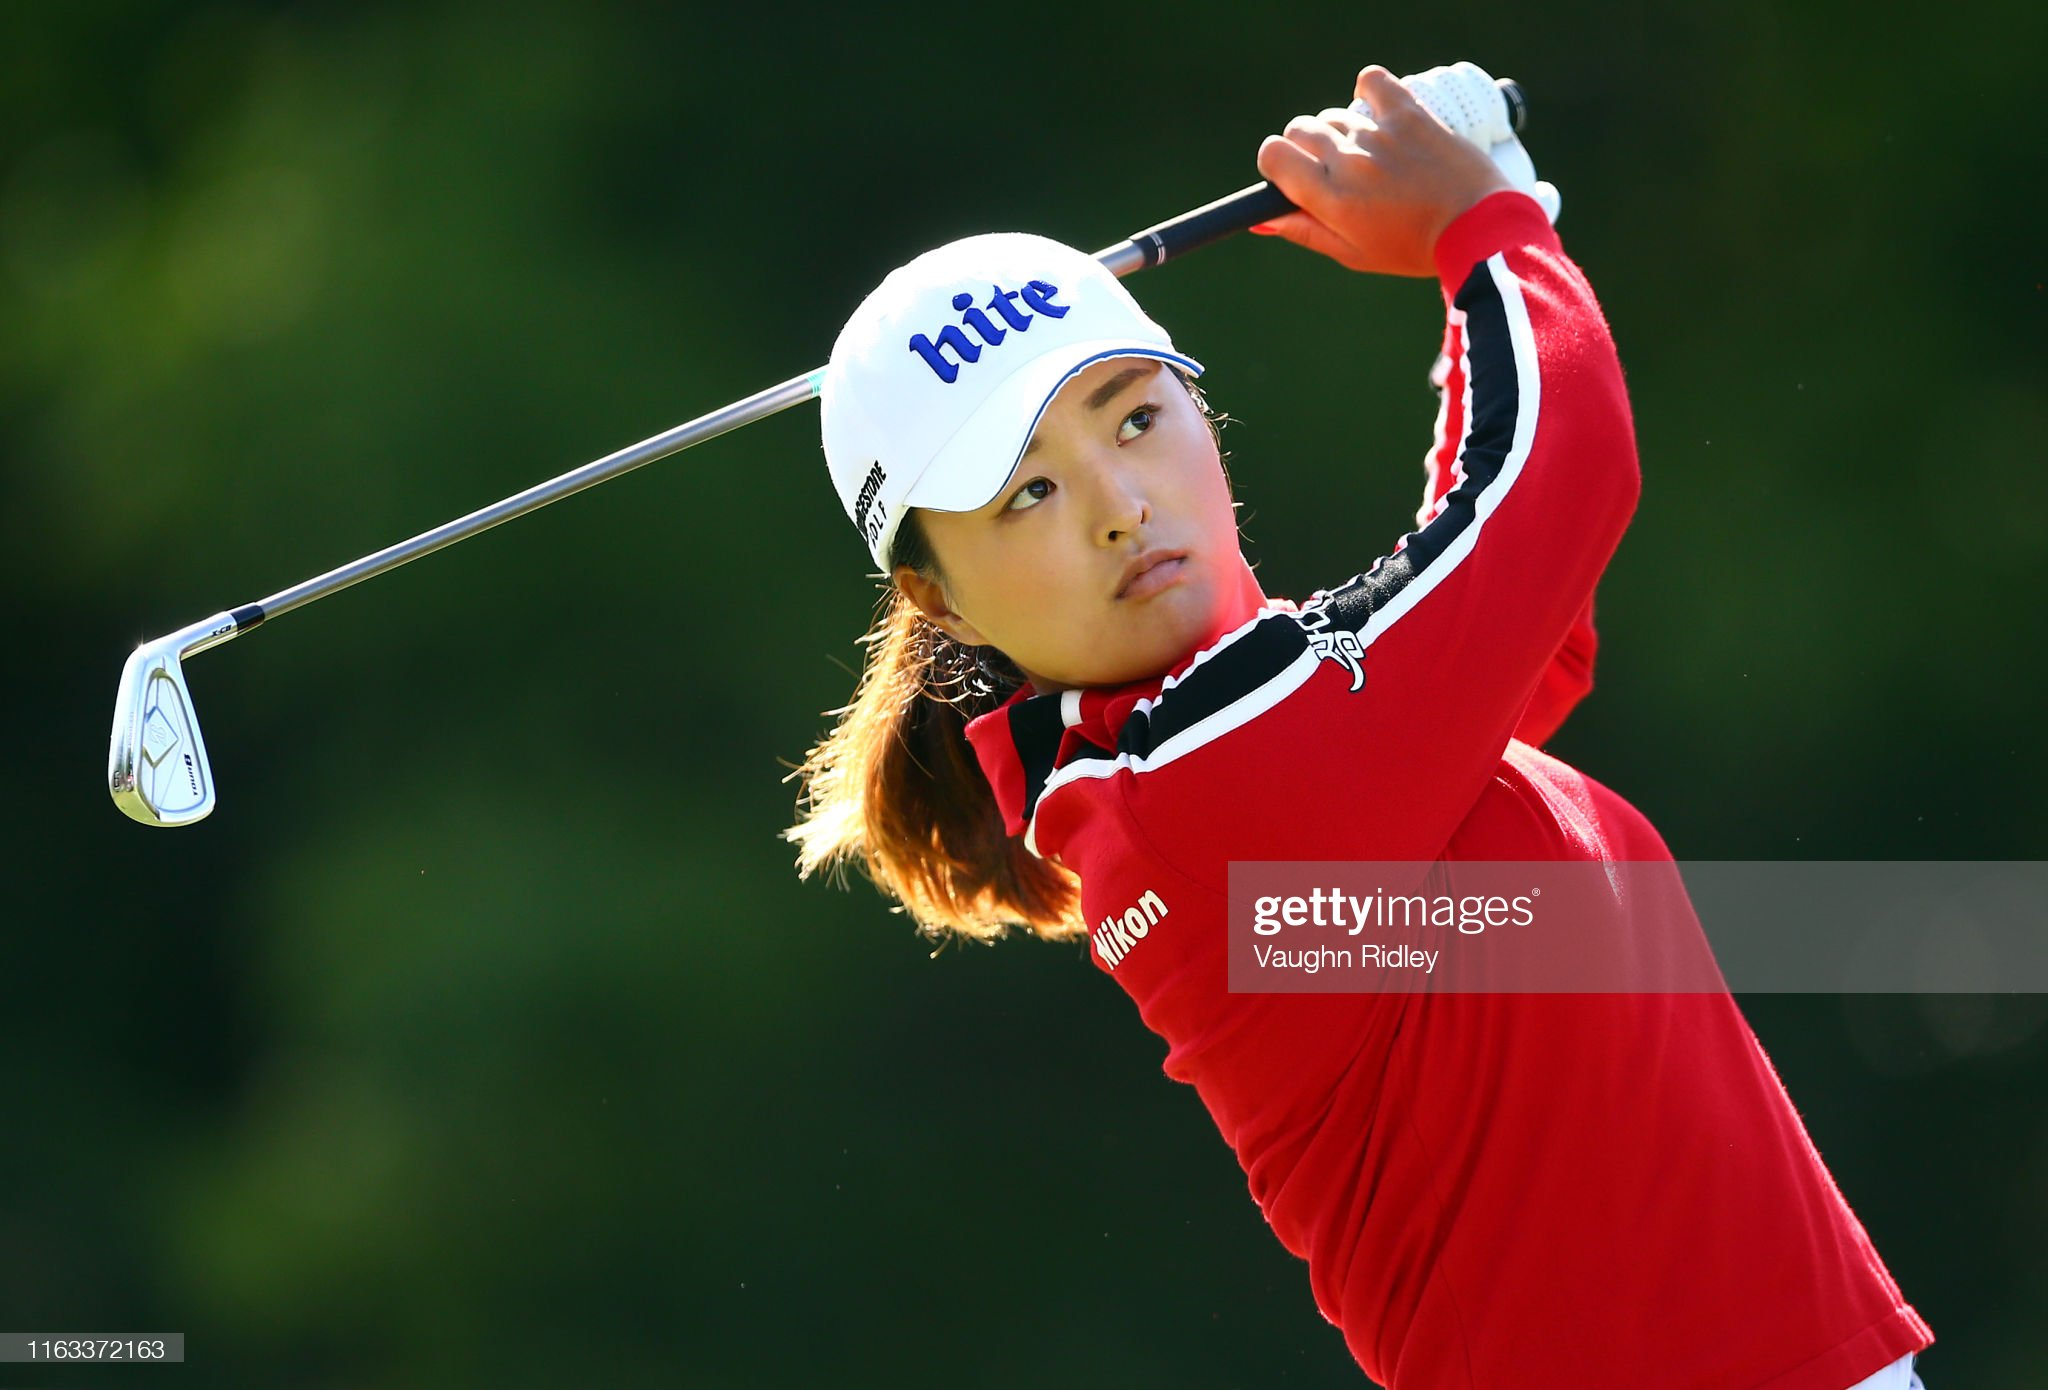 https://media.gettyimages.com/photos/jin-young-ko-of-korea-hits-her-tee-shot-on-the-8th-hole-during-the-picture-id1163372163?s=2048x2048